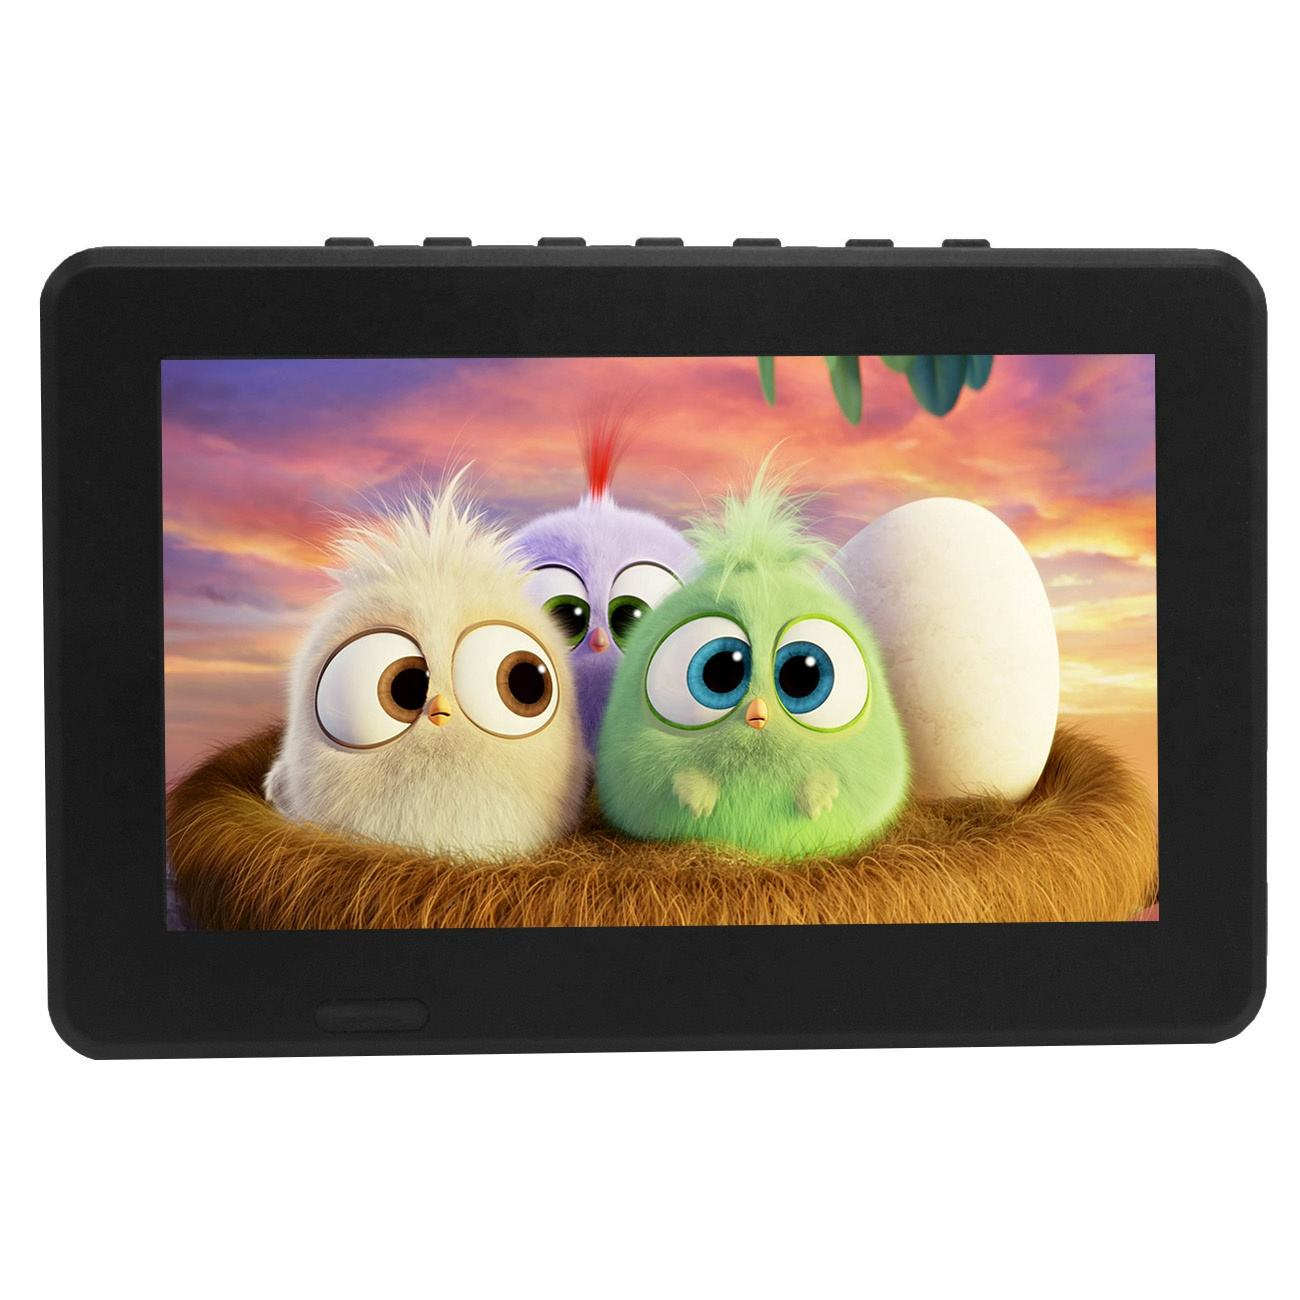 FTA freeview 7 inch TV! Good signal! cheap ( High Quality) OEM H.264 Portable TV HD mini Digital hd led smart TV television lc